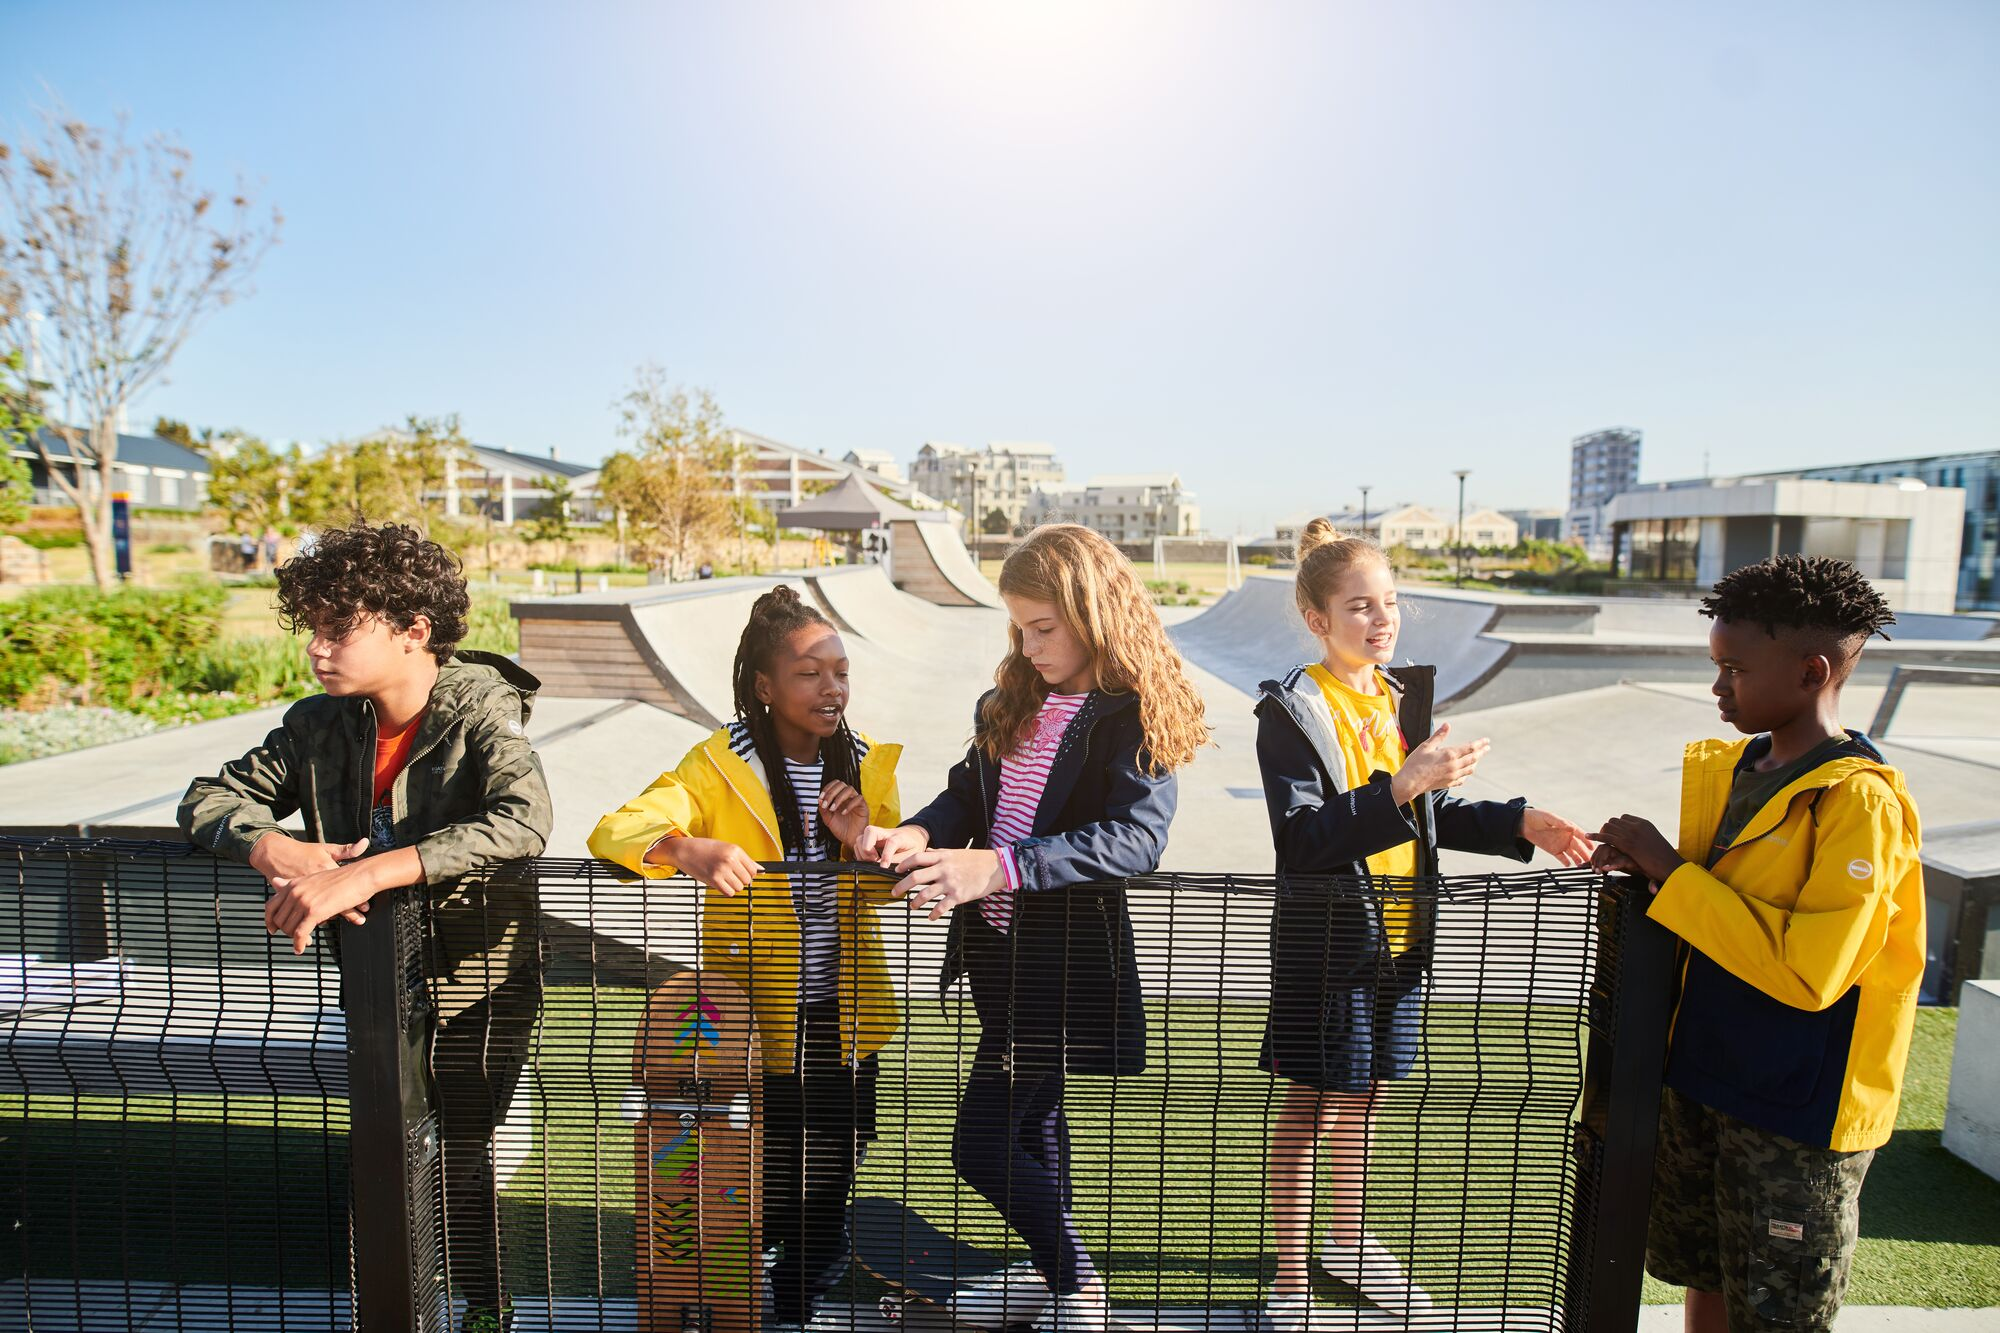 Group of 5 school children at the playground wearing yellow raincoats